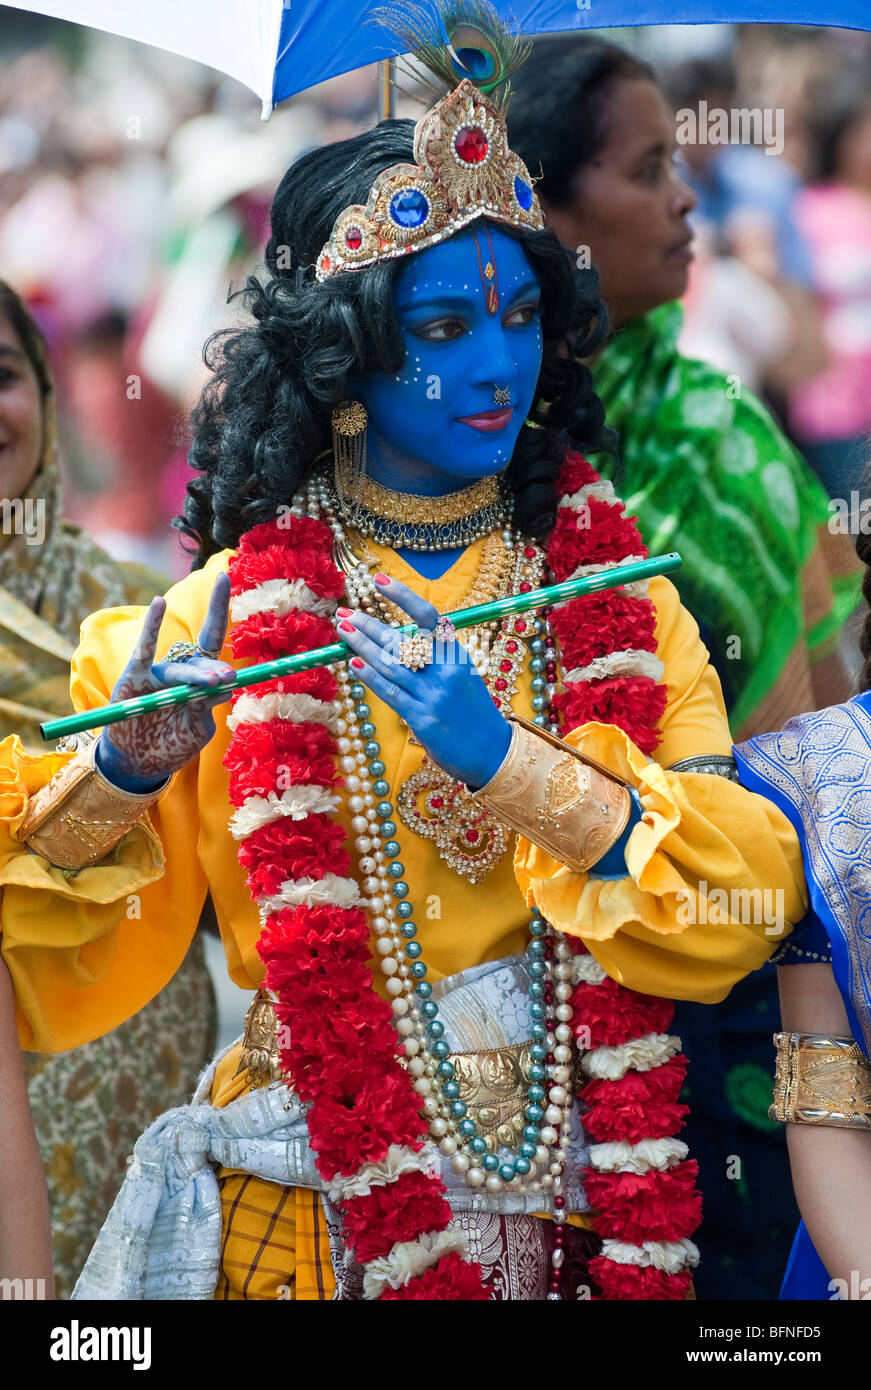 A girl dressed as Lord Krishna attends the celebrations of Ratha Yatra  The Hindu festival of chariots in London - Stock Image